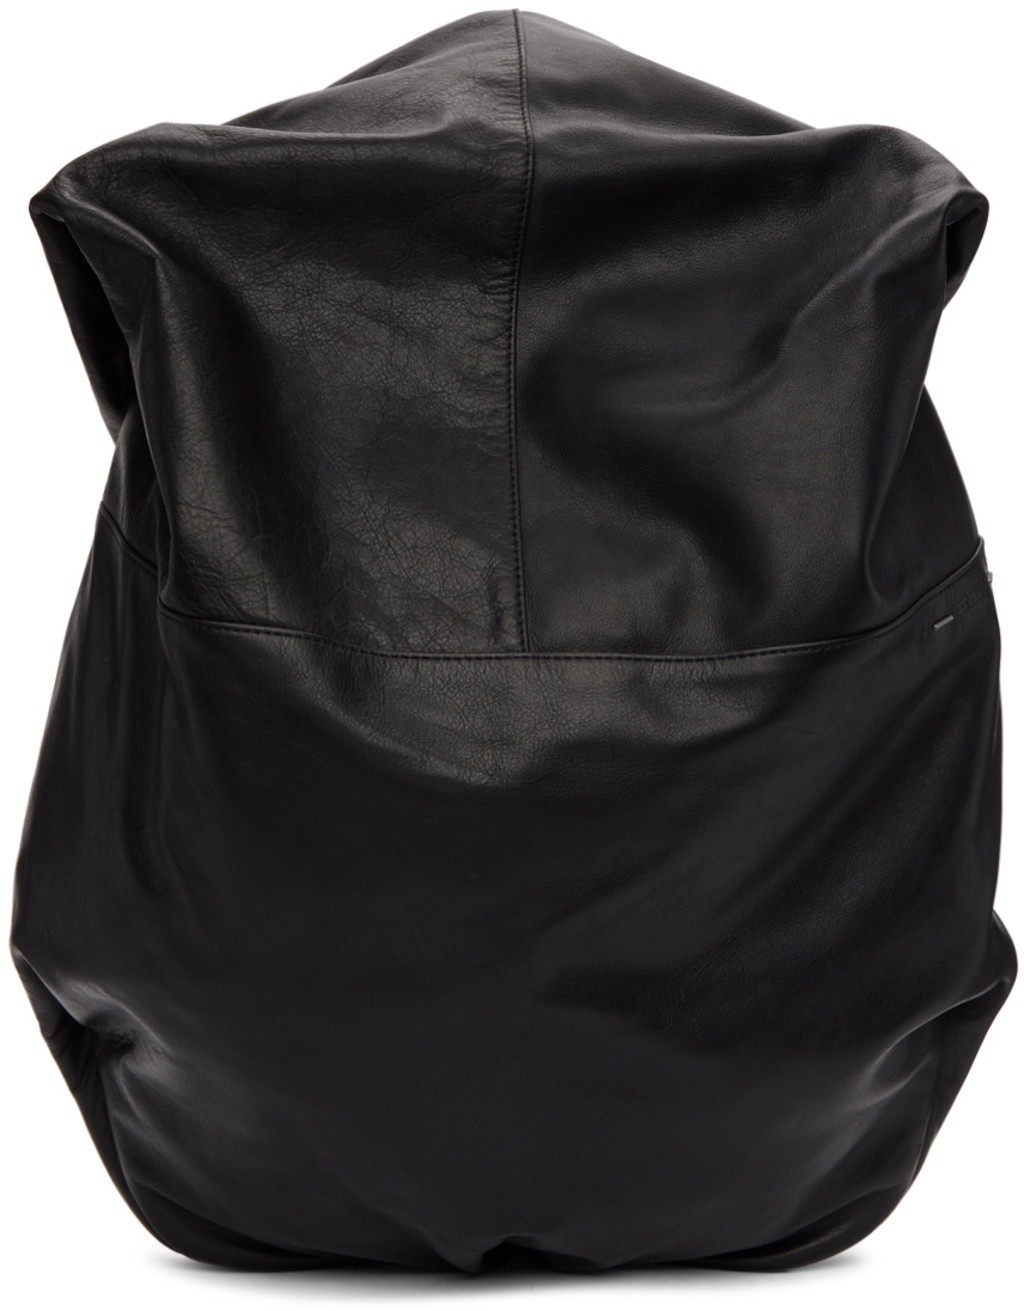 Lyst - Balenciaga Leather Drawstring Backpack in Black for Men 377a3c5802bf4